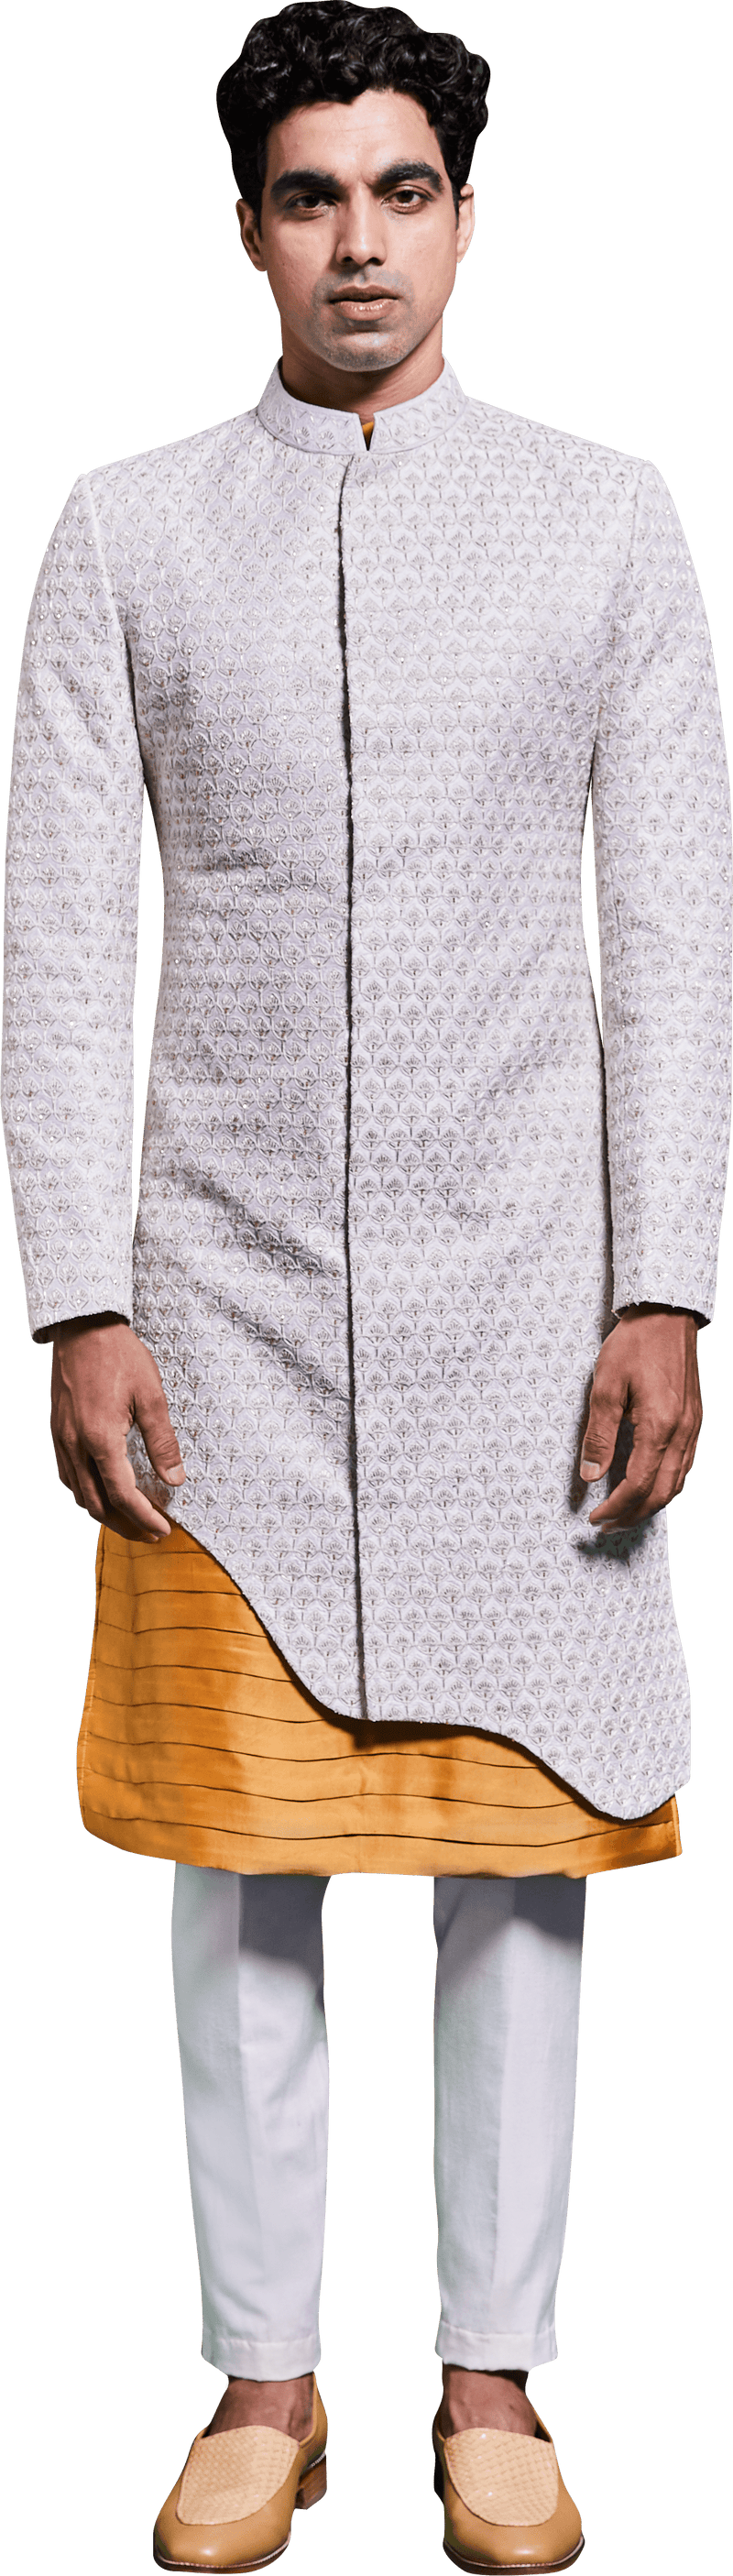 White Golden Sherwani & Kurta Ensemble